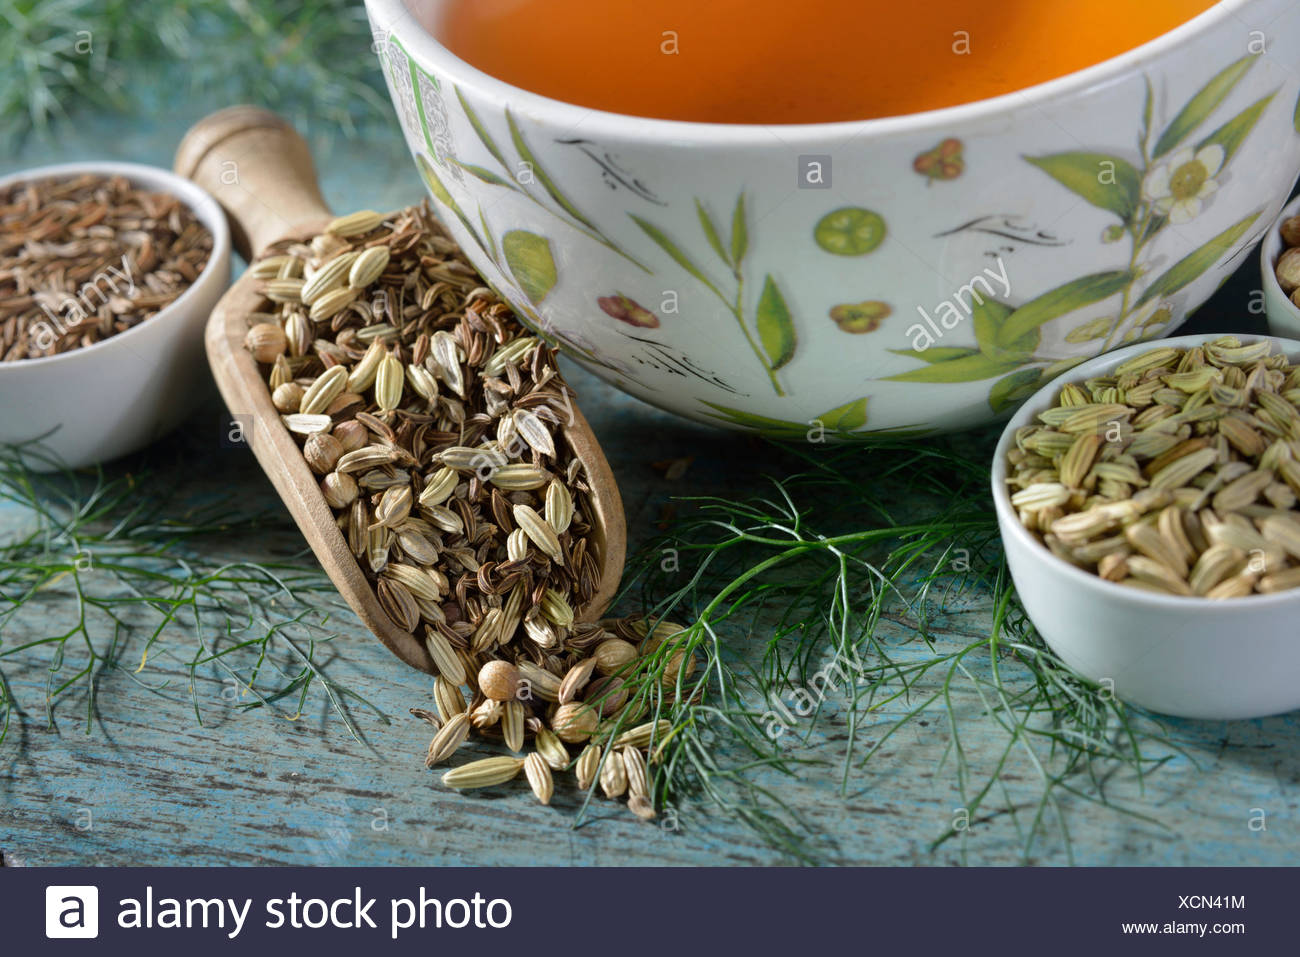 cup of tea with anise, fennel, annual caraway, coriander